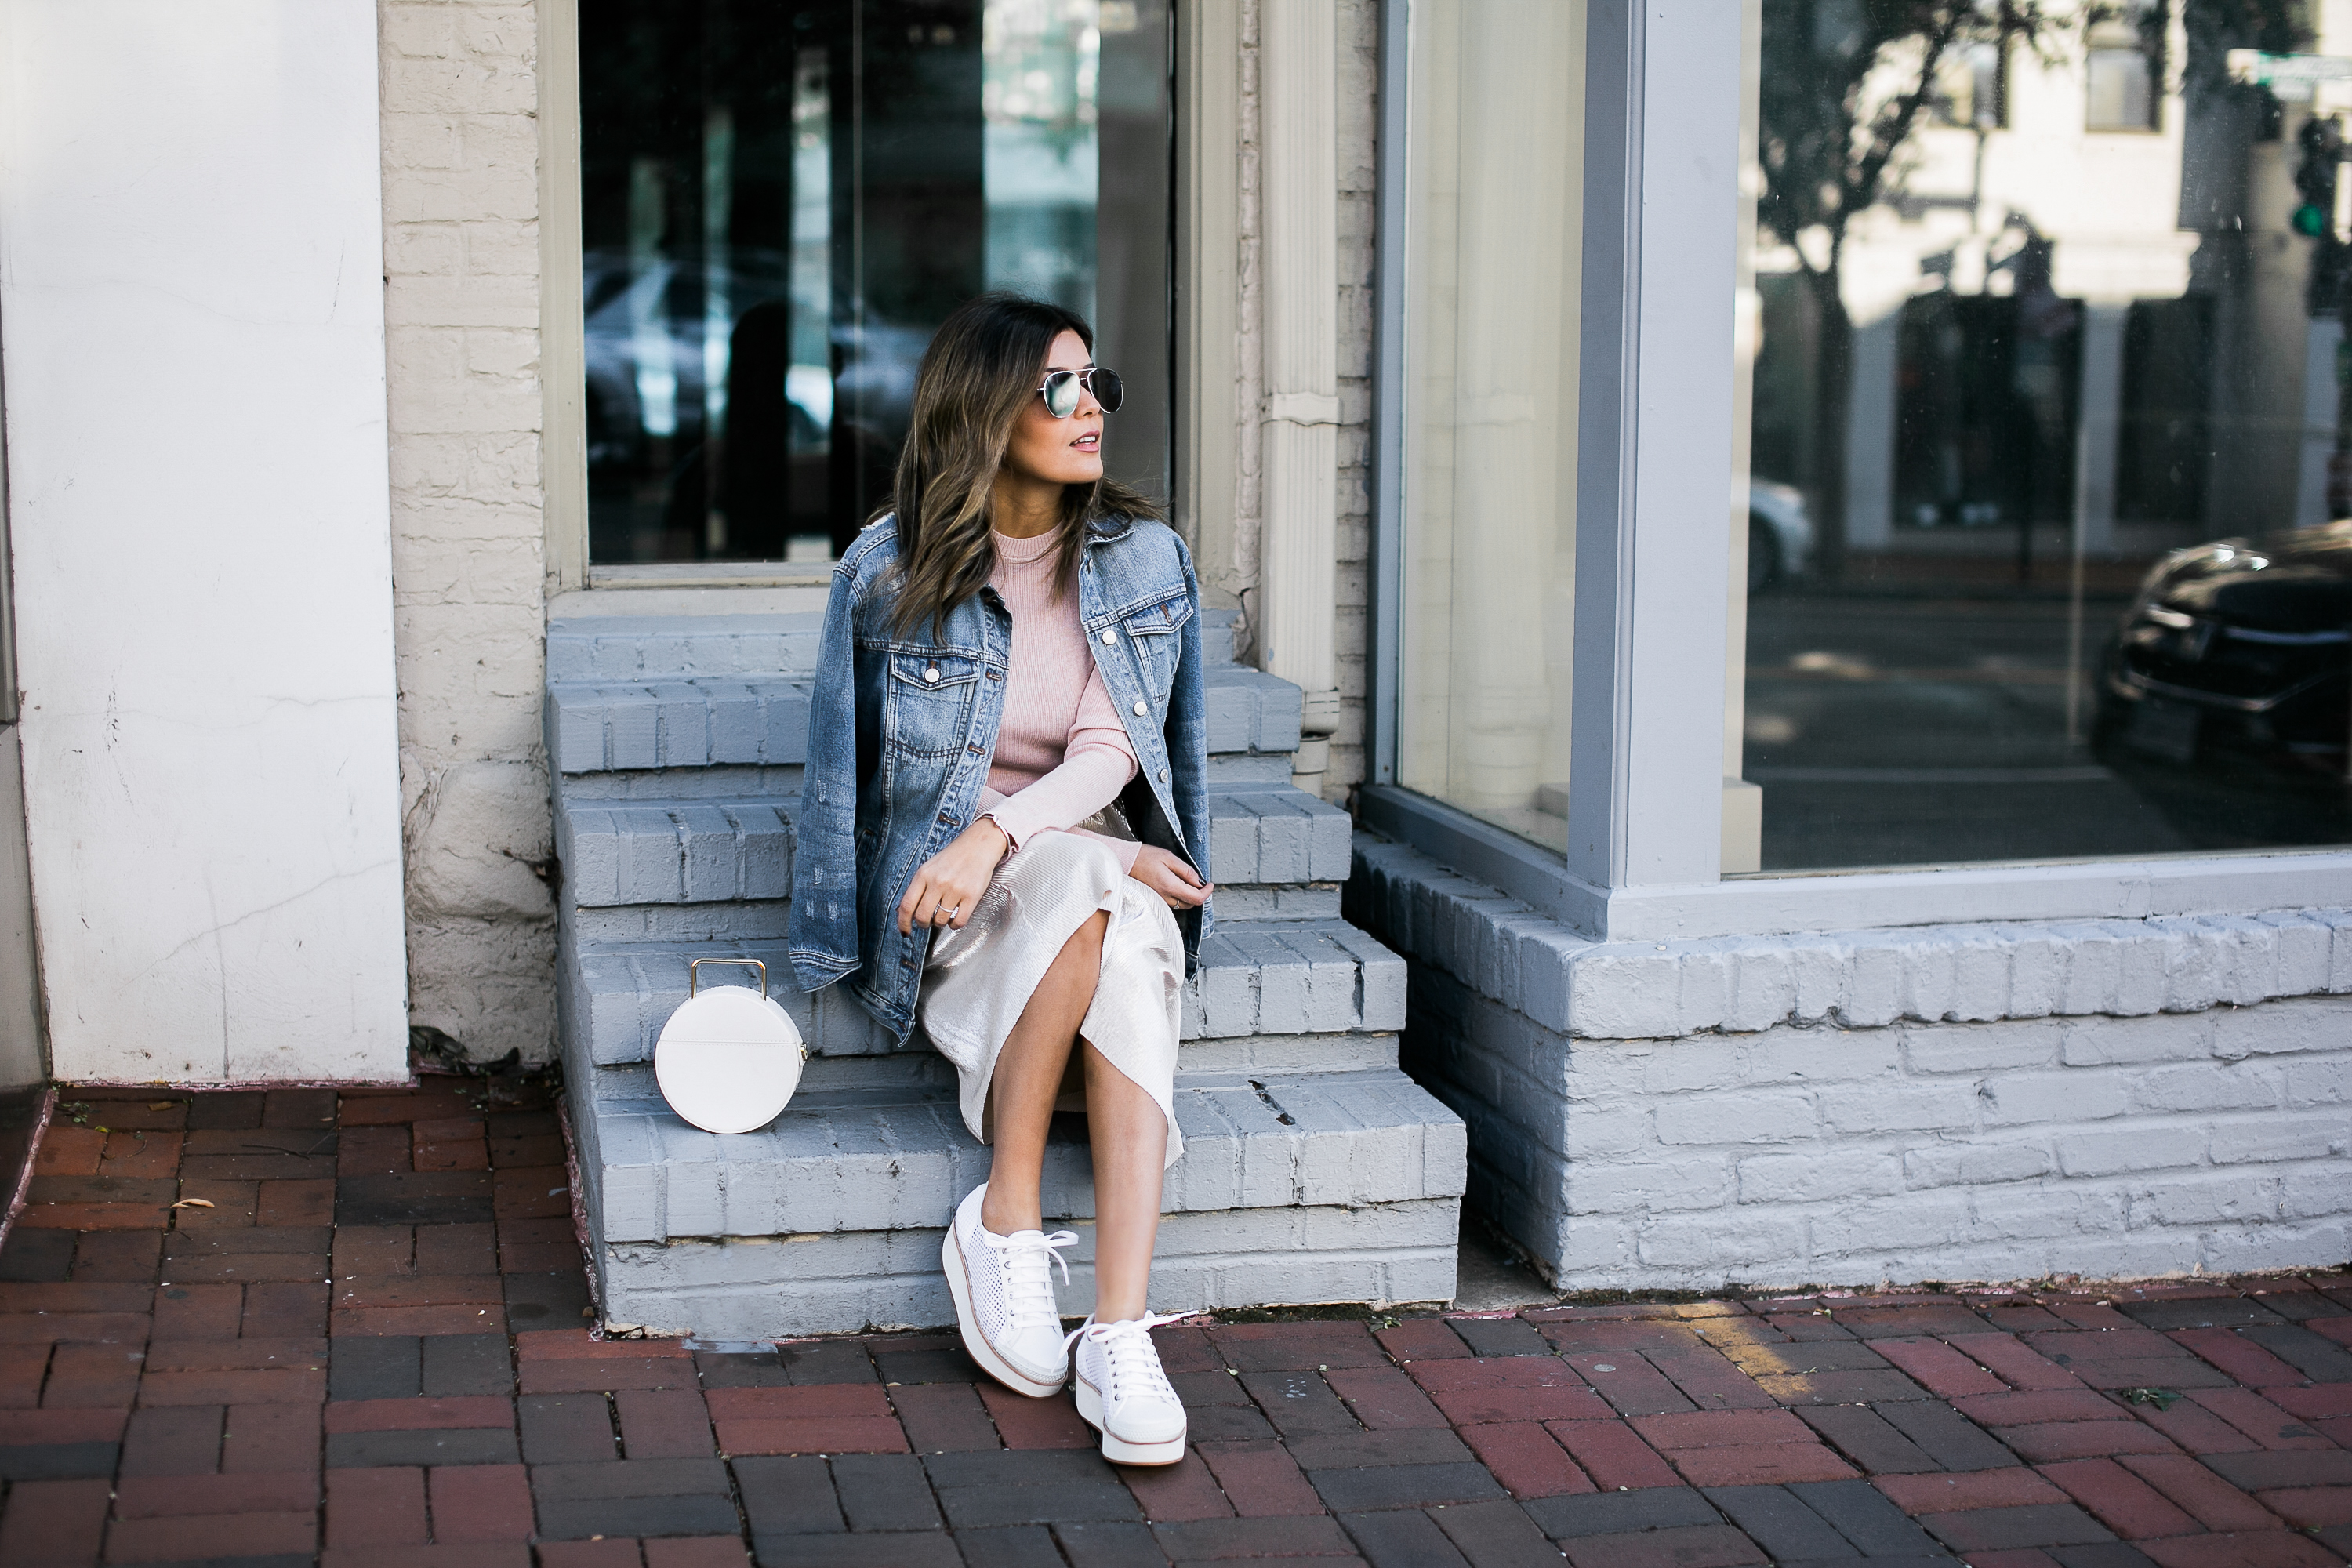 Style MBA wears Who What Wear Collection Skirt and Top